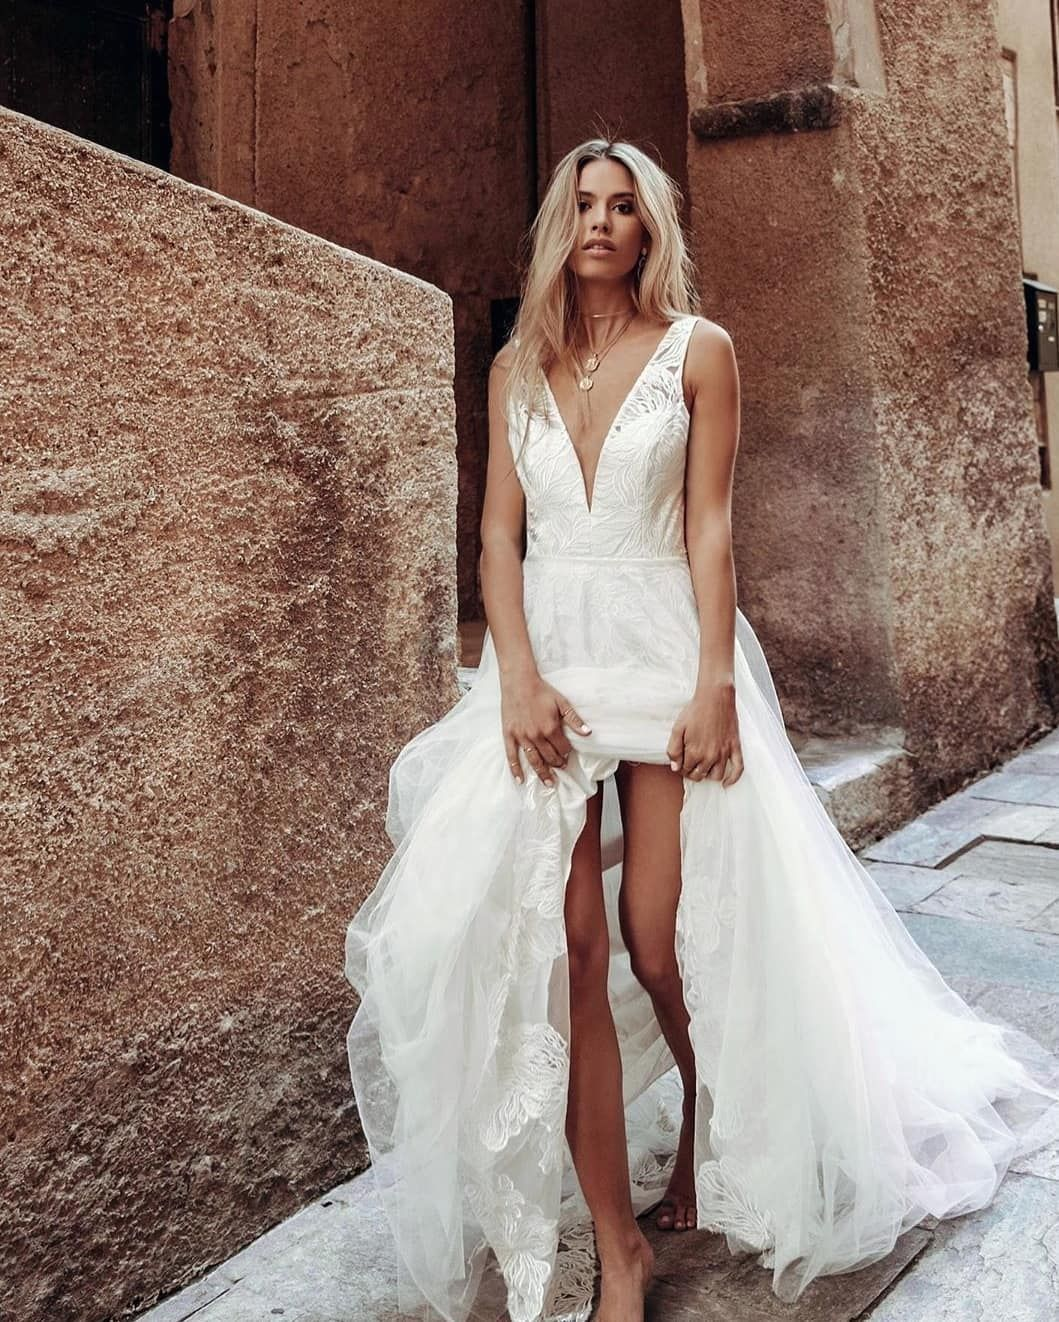 The Bridal Atelier On Instagram Tba X Lovers Society The Sydney Dress By Loversxsociety So Wedding Dresses Casual Beach Wedding Dress Beach Wedding Dress